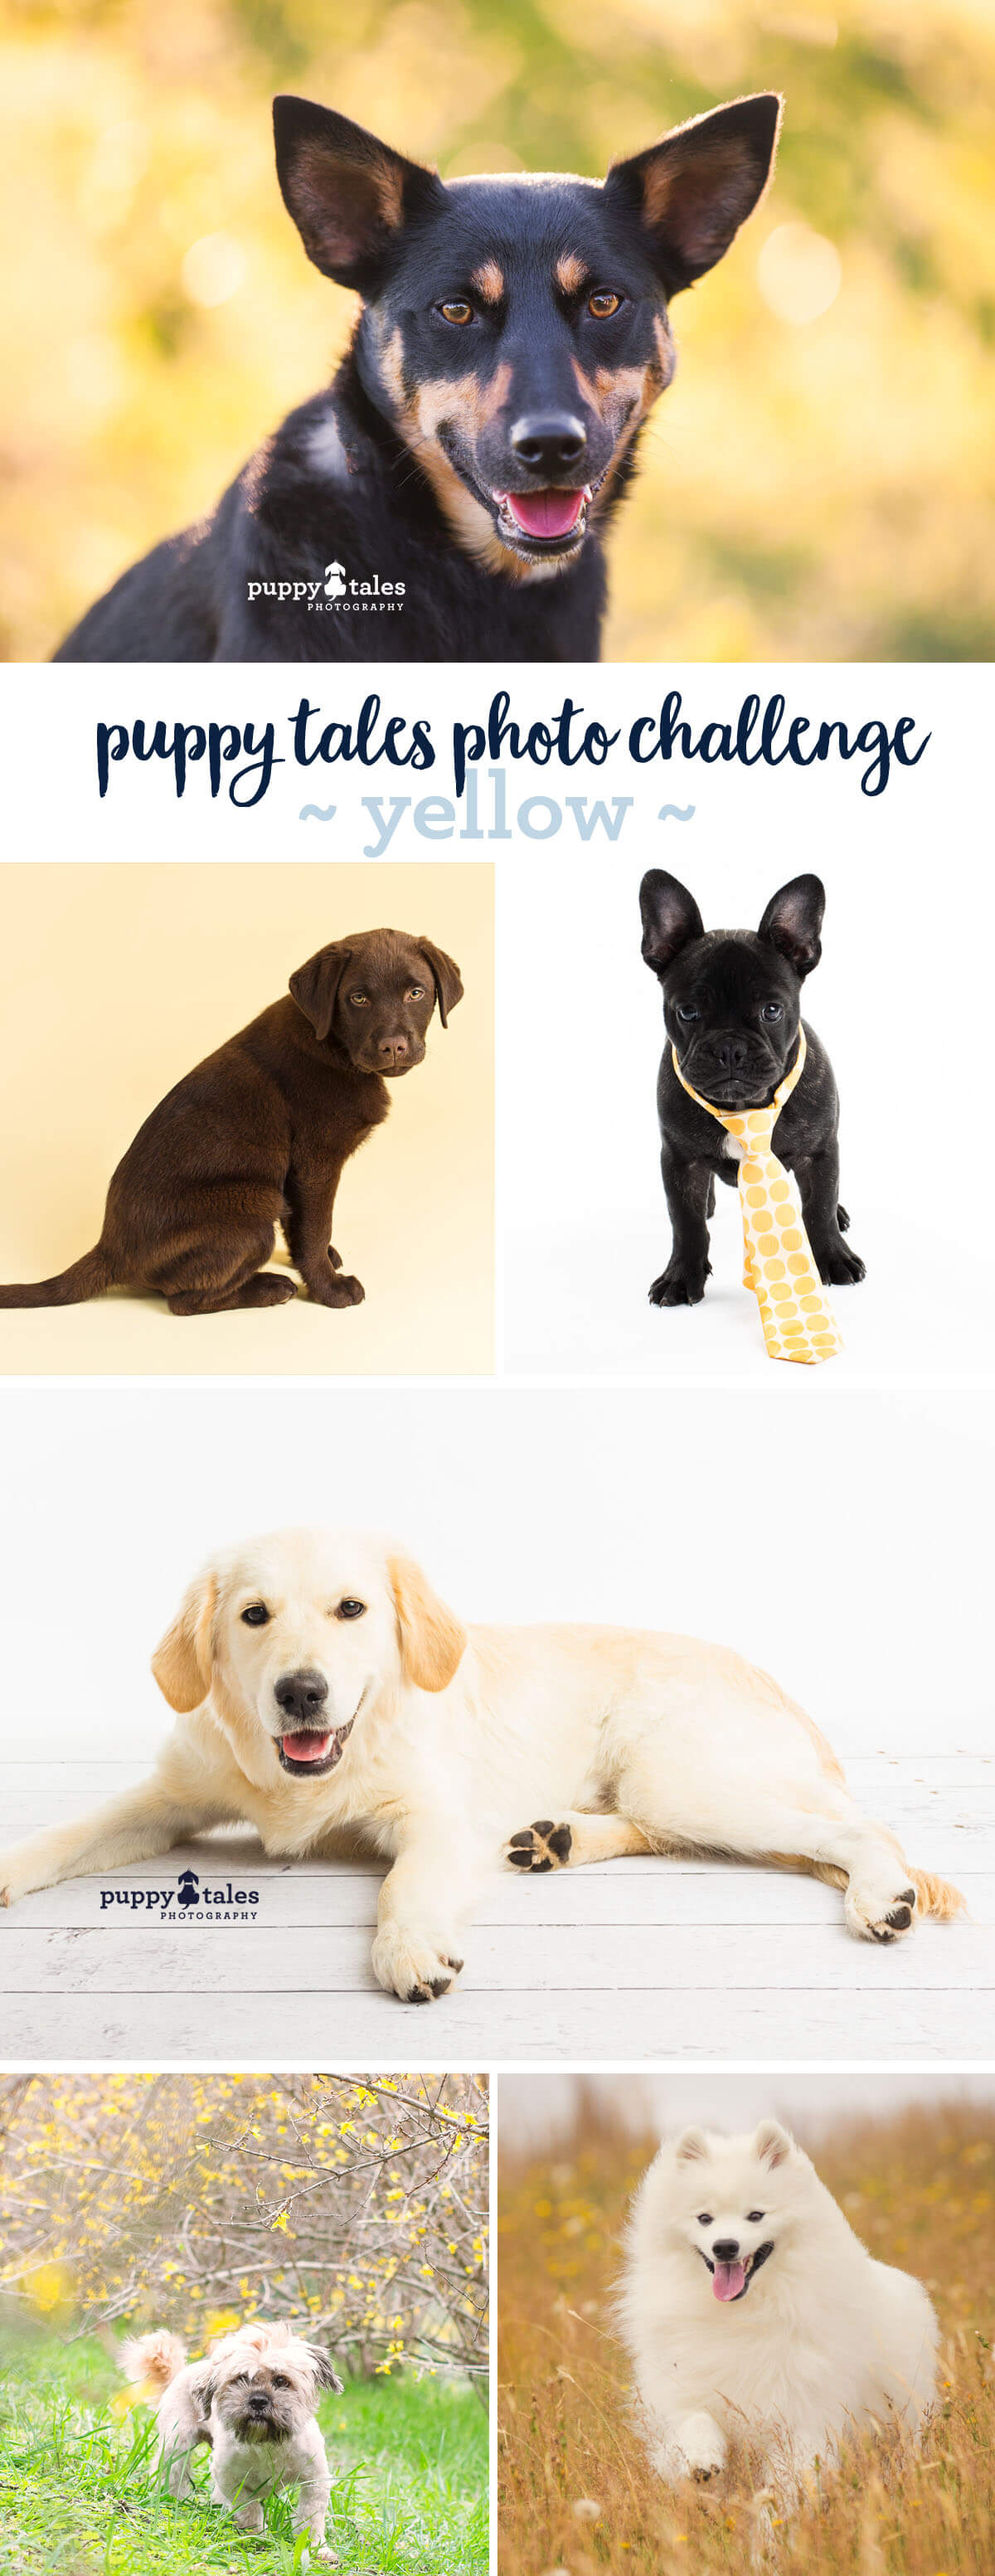 Puppy Tales Photo Challenge ~ Yellow